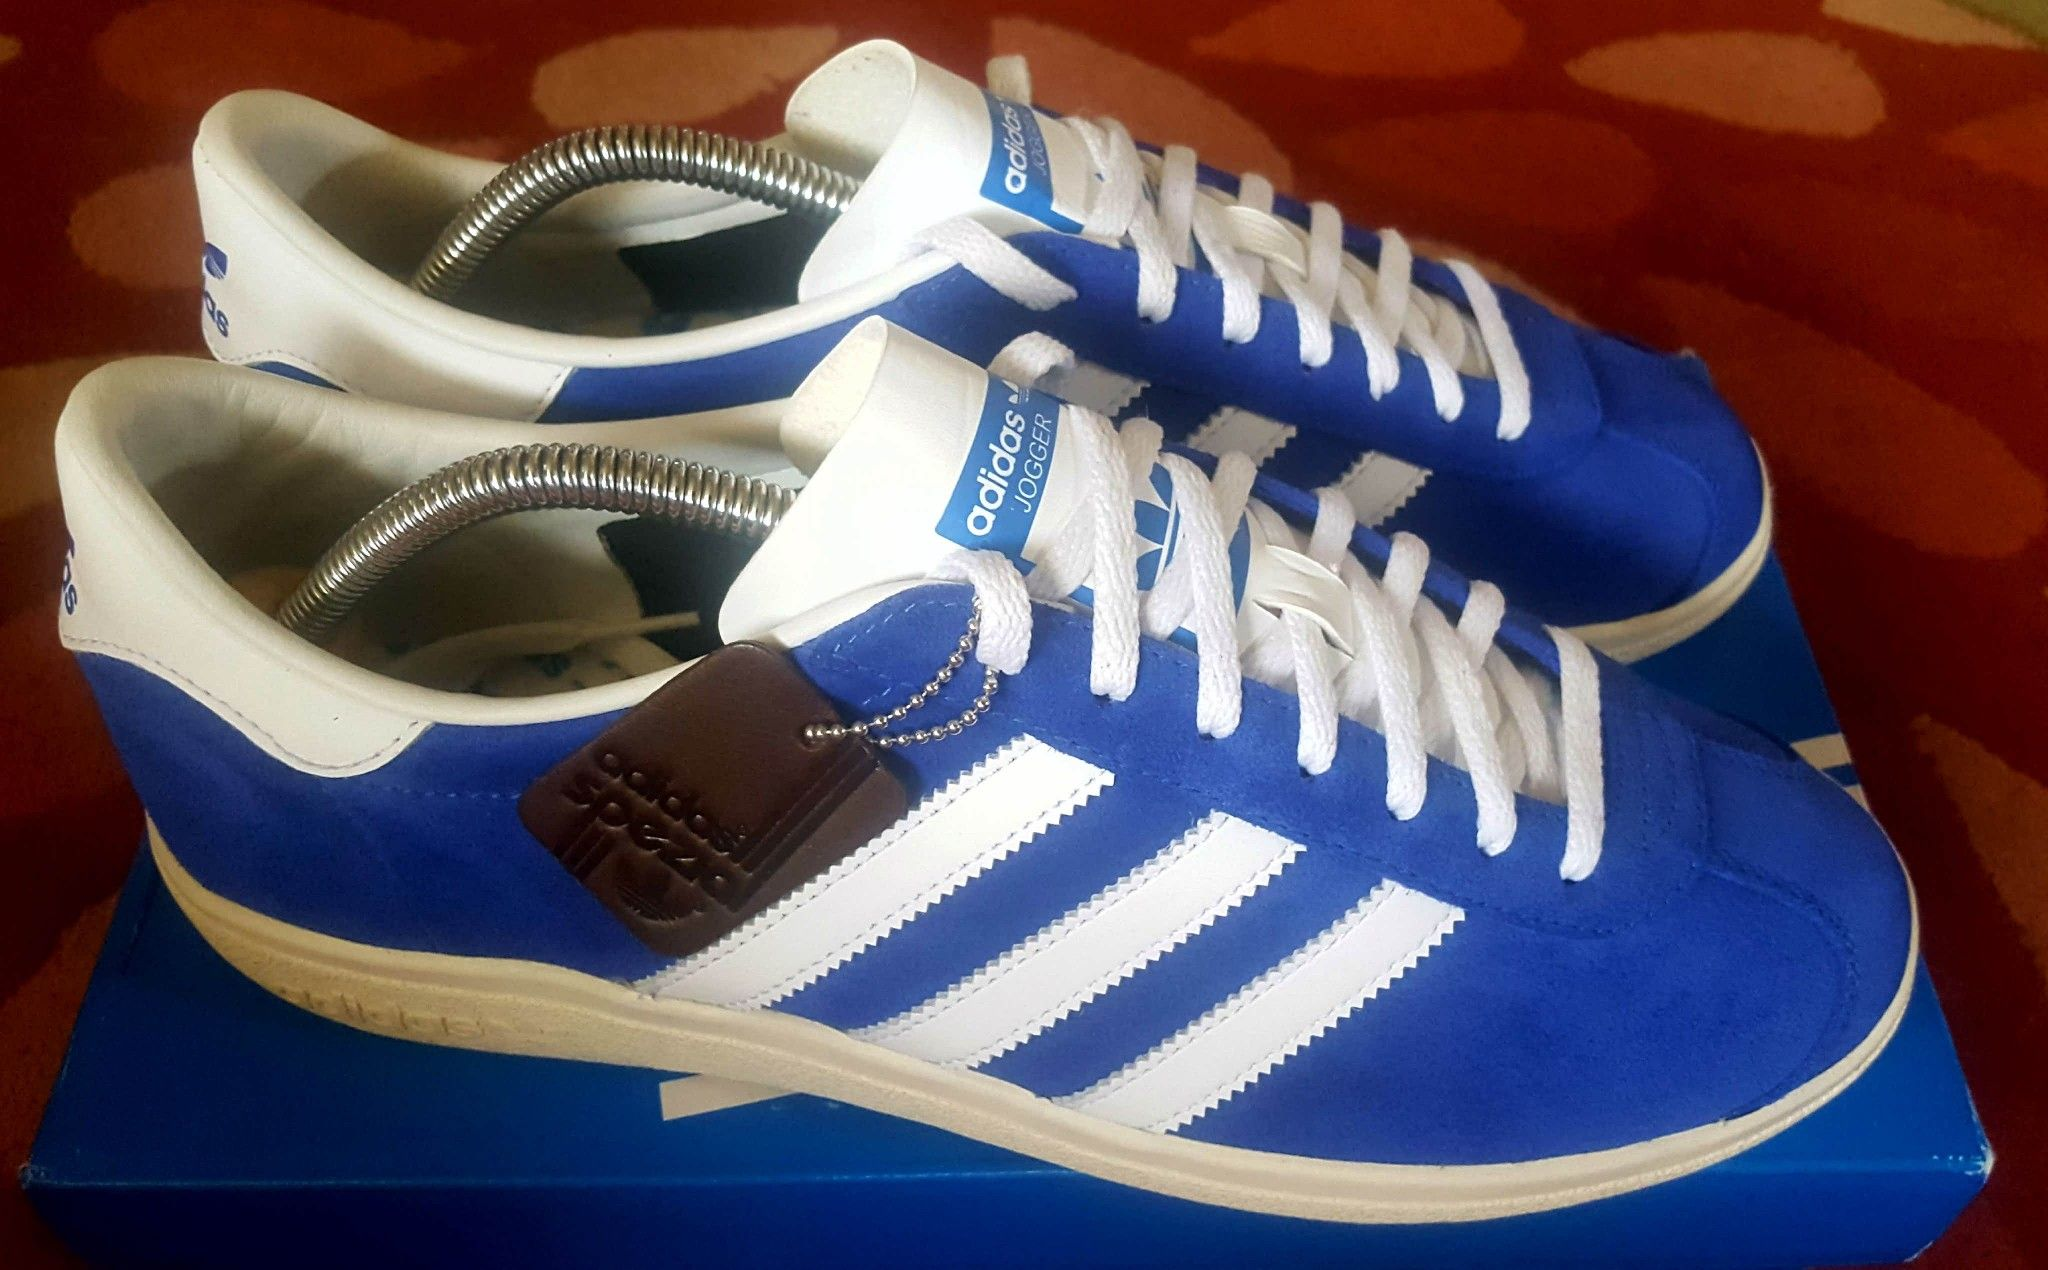 Finally got my mitts on a pair of Adidas Jogger Spezial